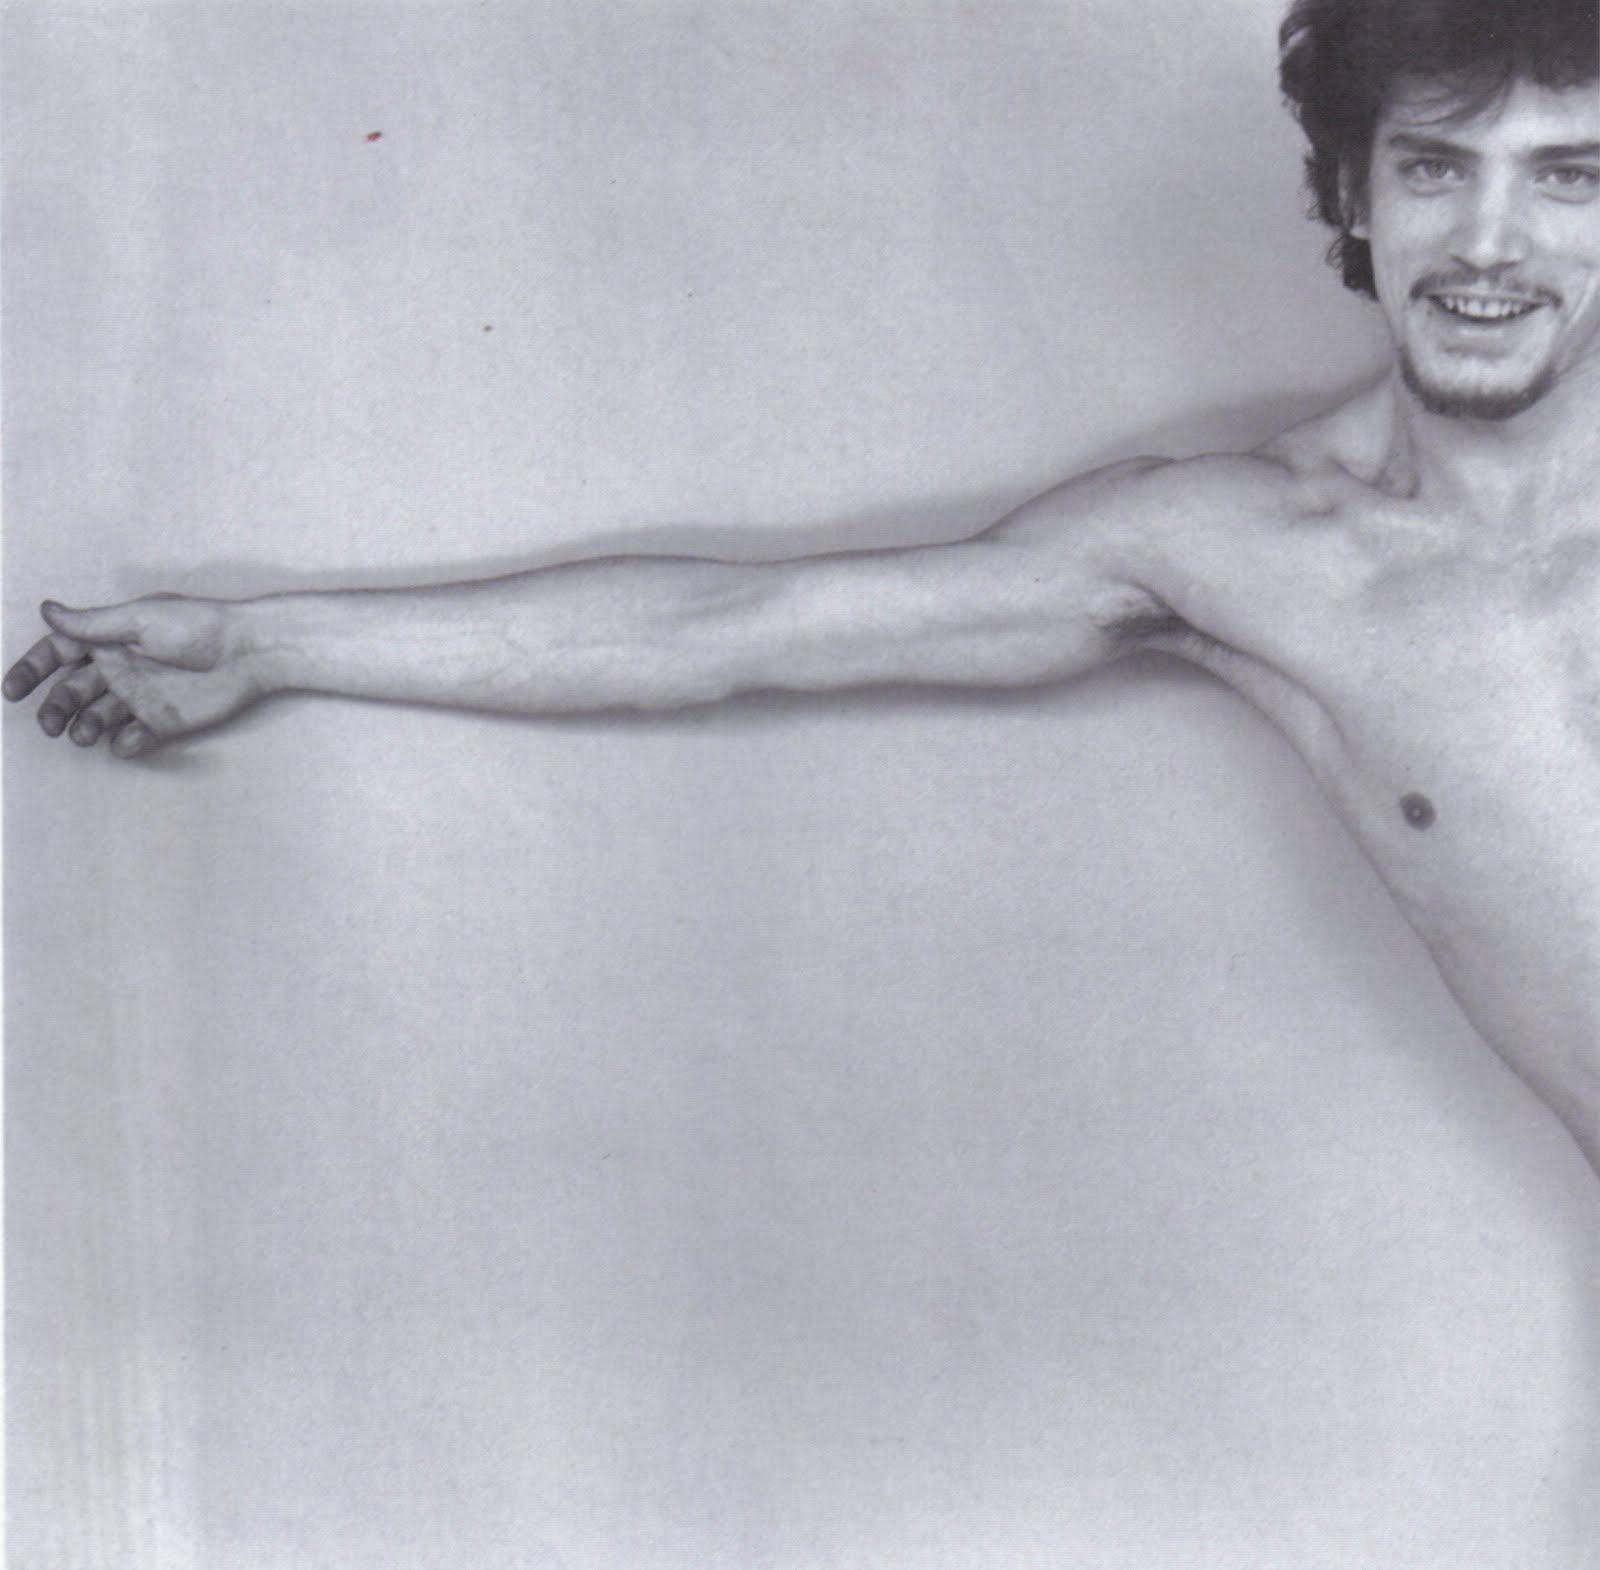 Robert mapplethorpe young man with arm extended 1975 the hand at the right degree of - Barthes la chambre claire ...